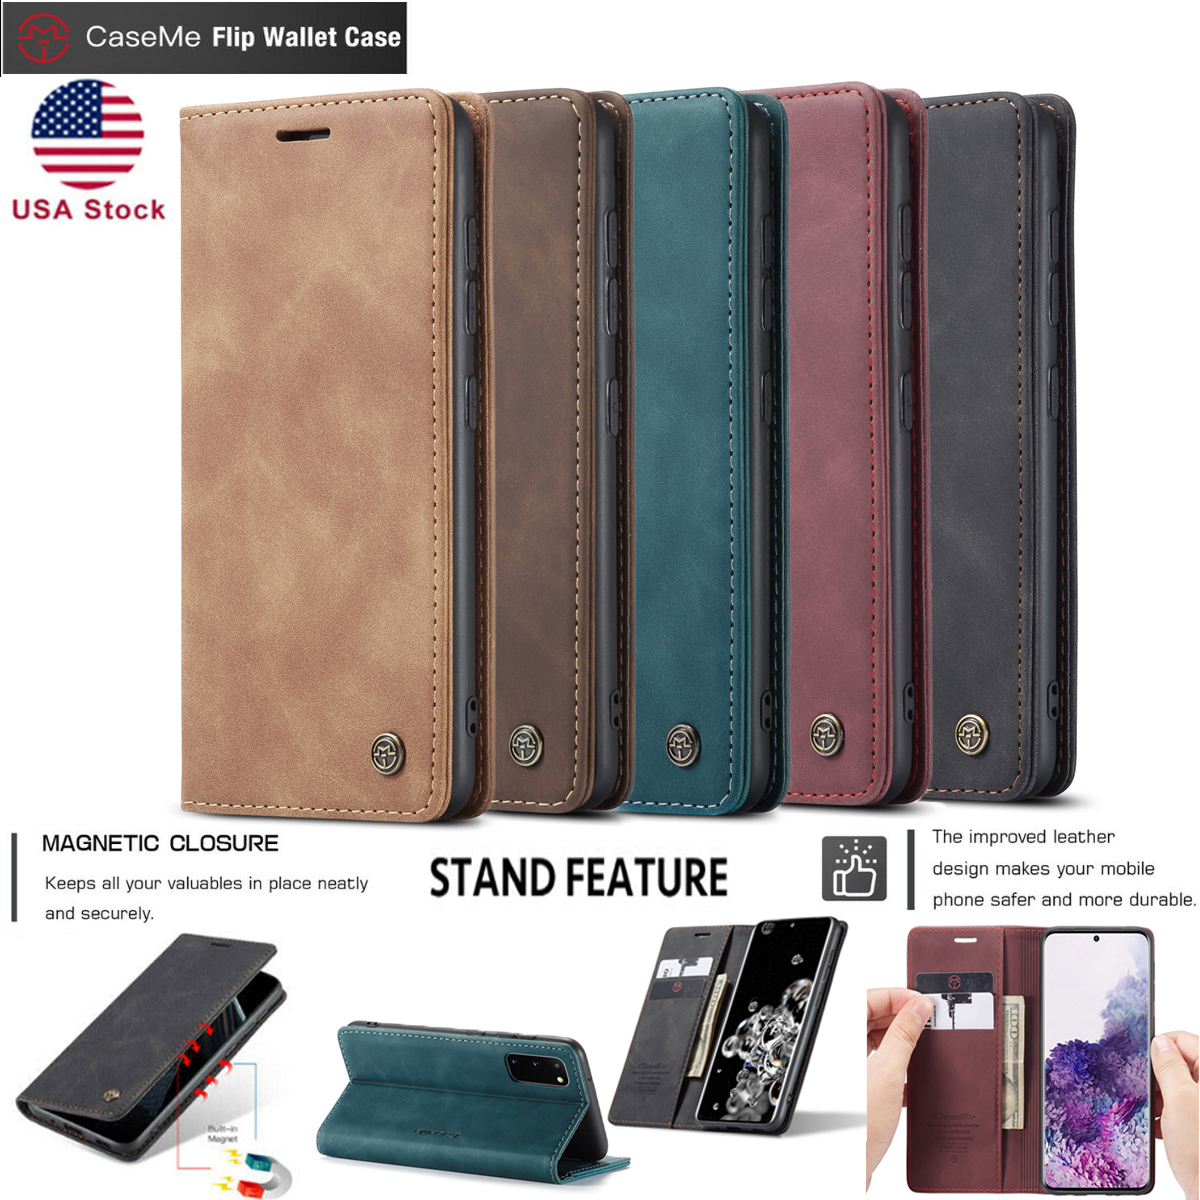 Samsung Galaxy S8 Plus Flip Case Cover for Samsung Galaxy S8 Plus Leather Extra-Shockproof Business Mobile Phone case Card Holders Kickstand with Free Waterproof-Bag Absorbing